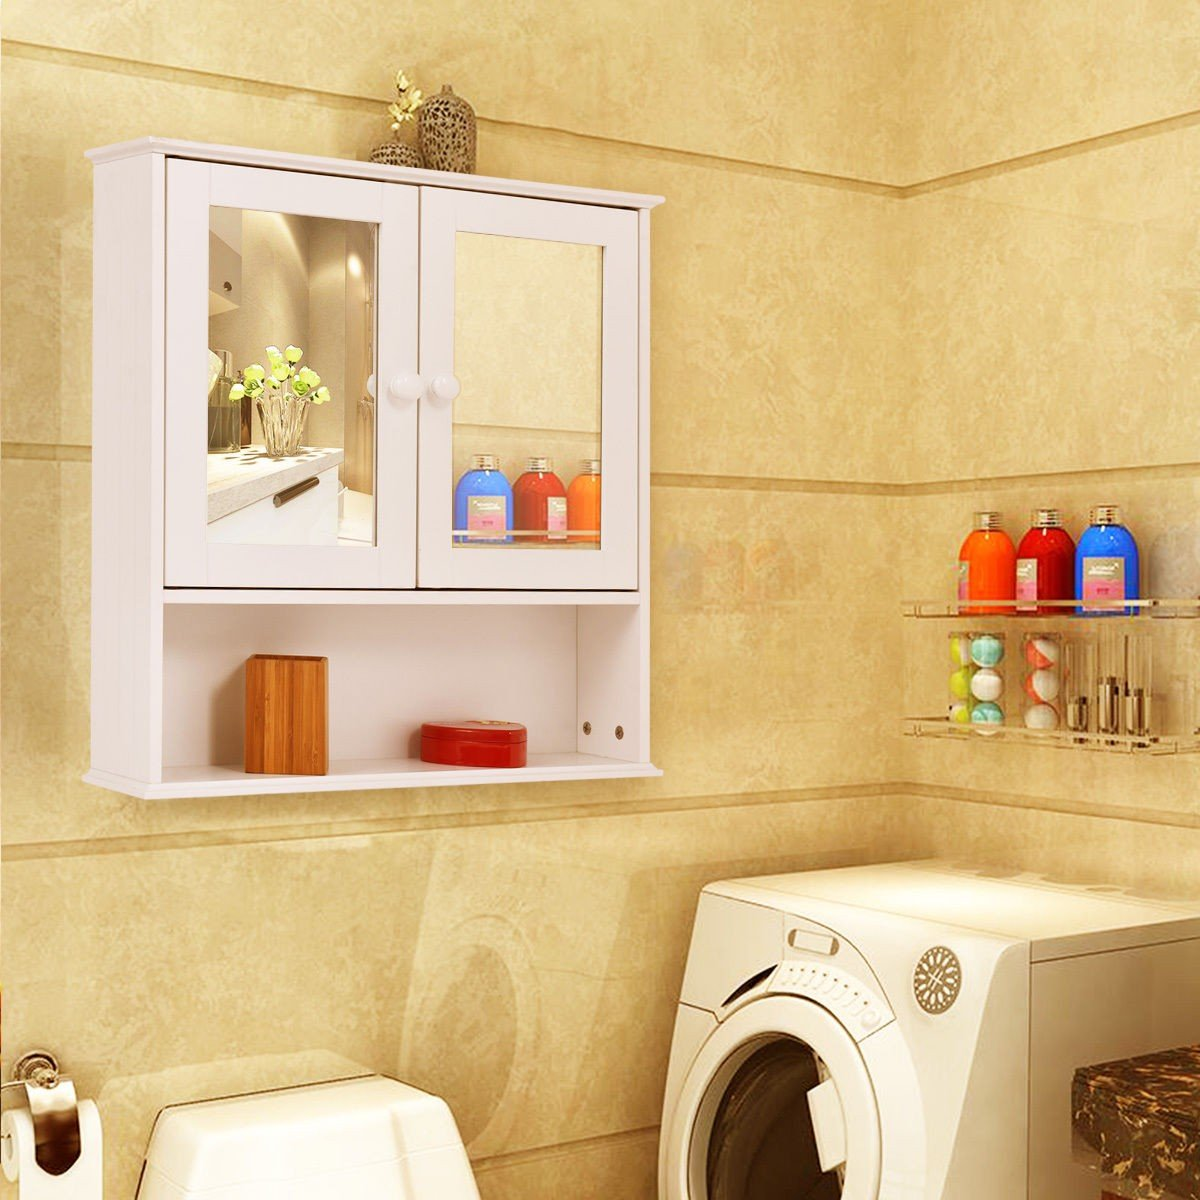 Amazon.com: Bathroom Wall Cabinet with Double Mirror Doors - By ...